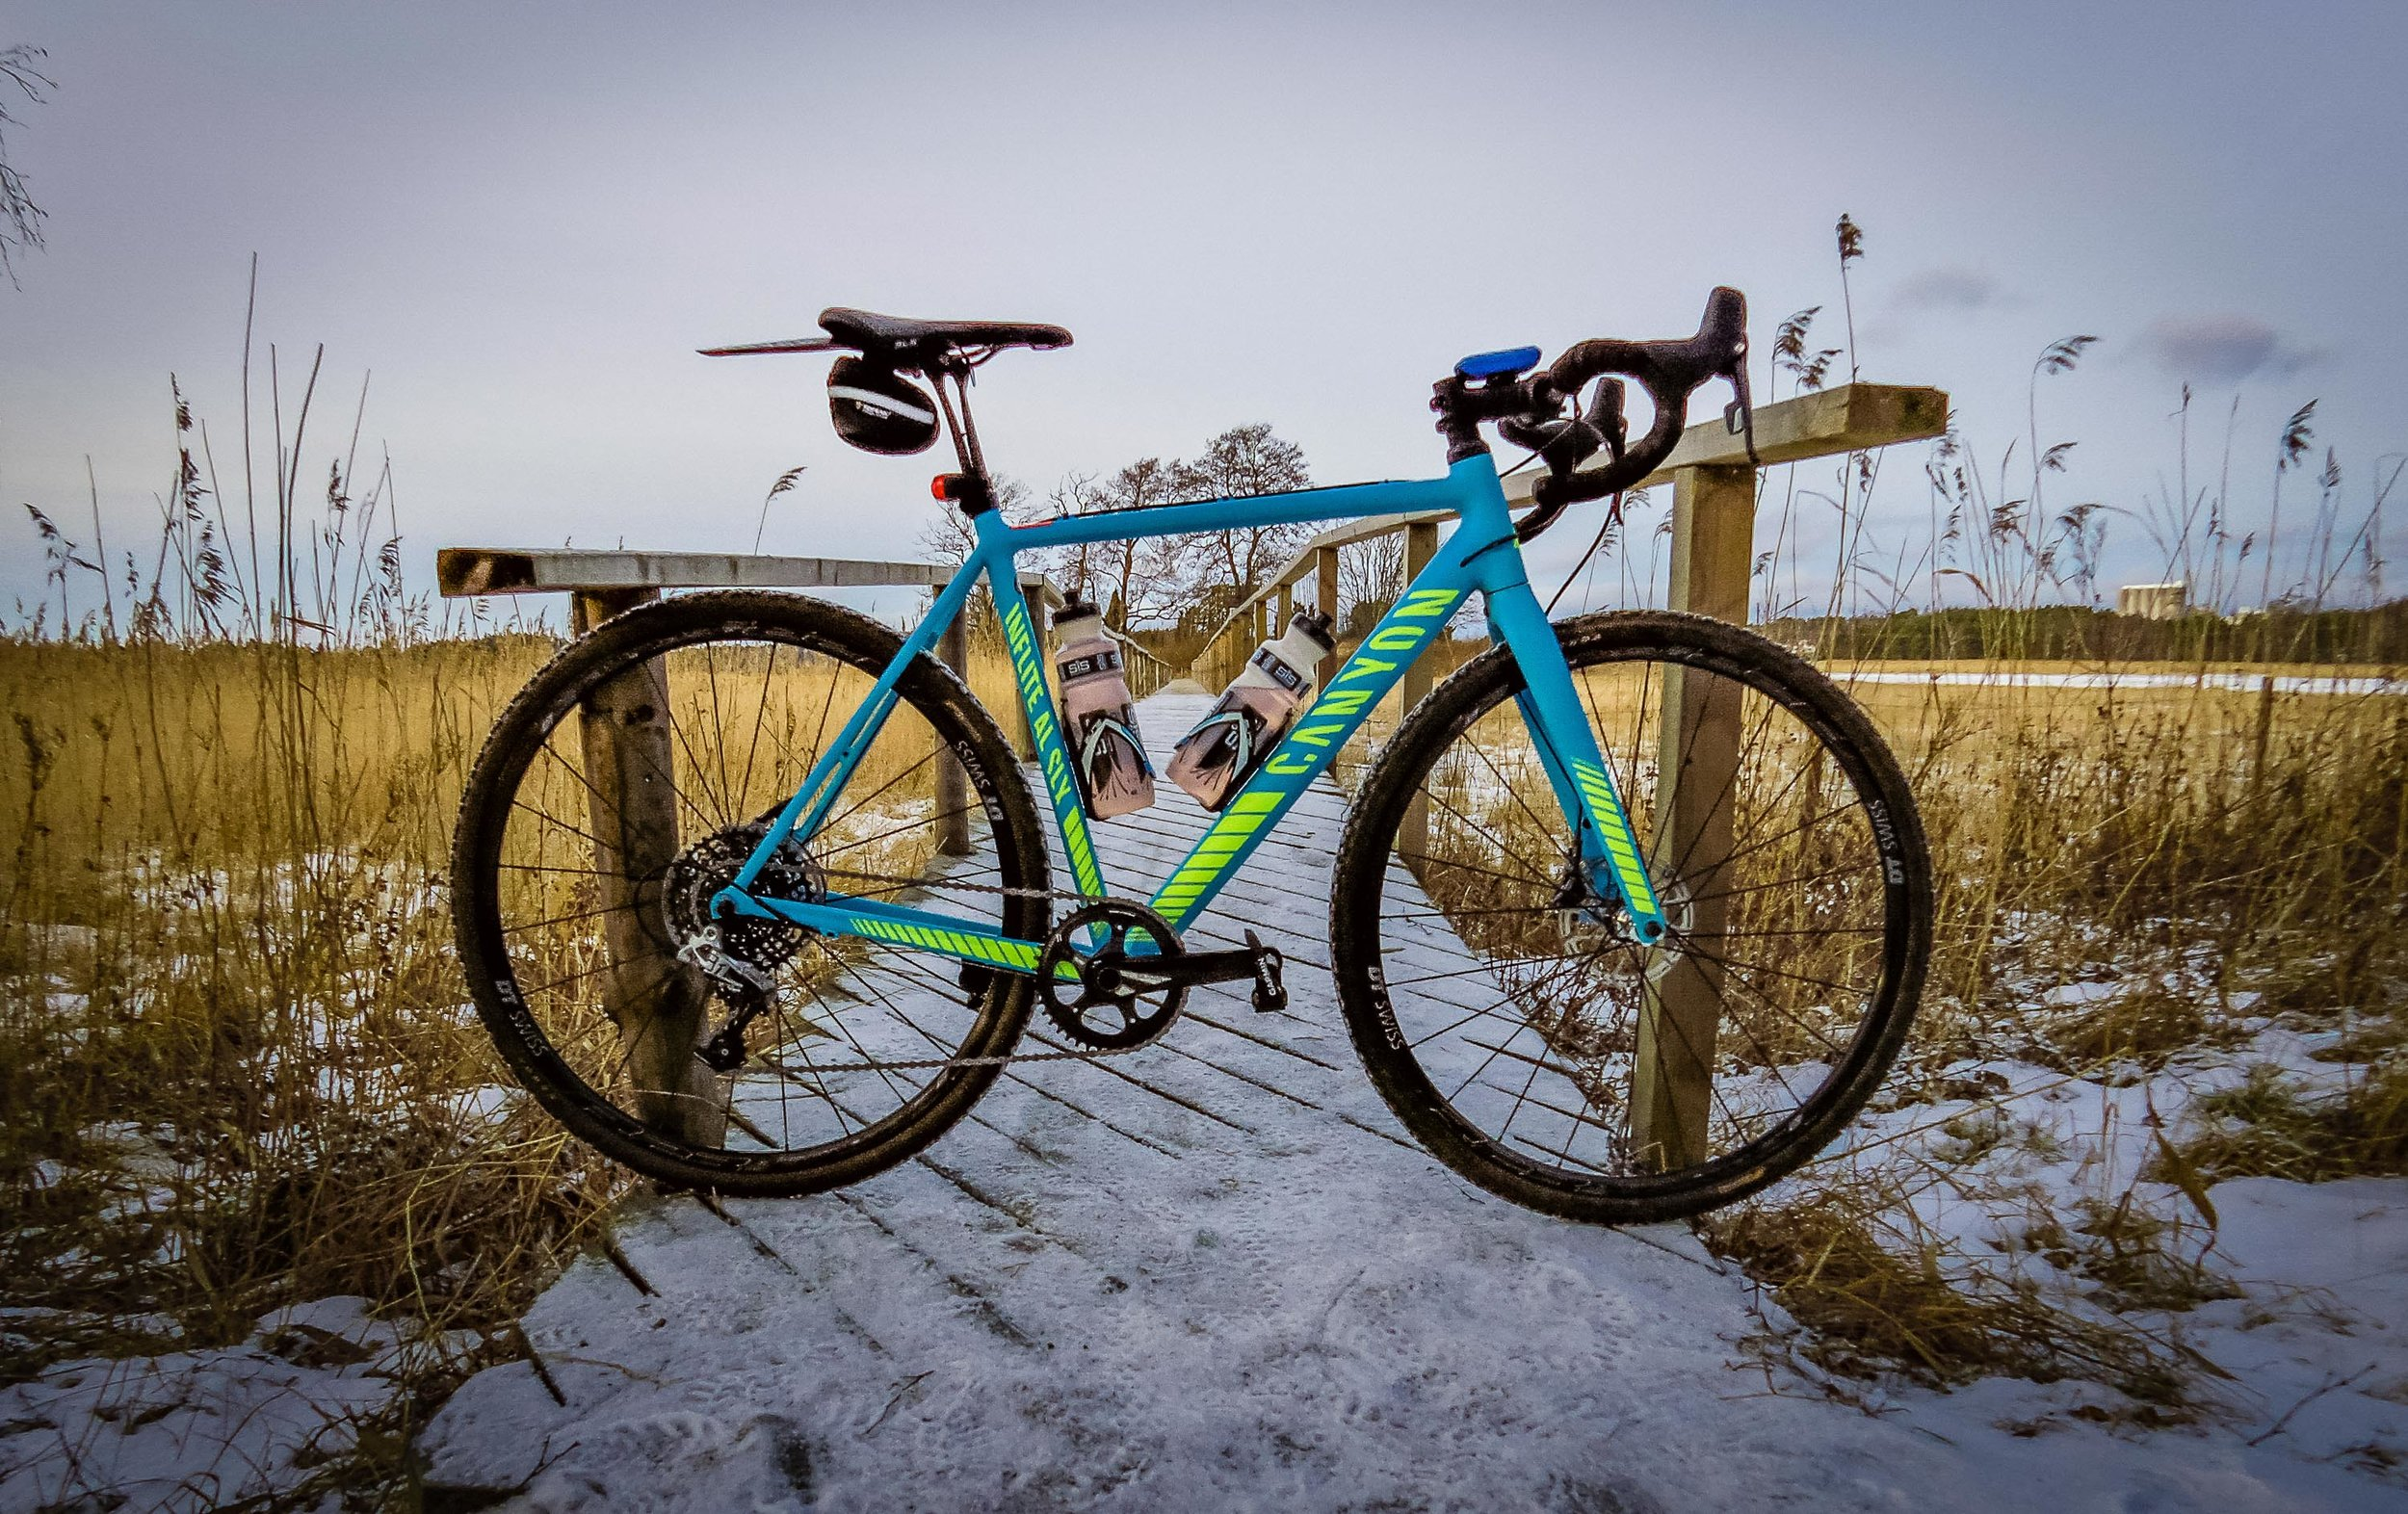 The year started well, riding outside with the Canyon Inflite AL SLX. A superb cyclocross bike.